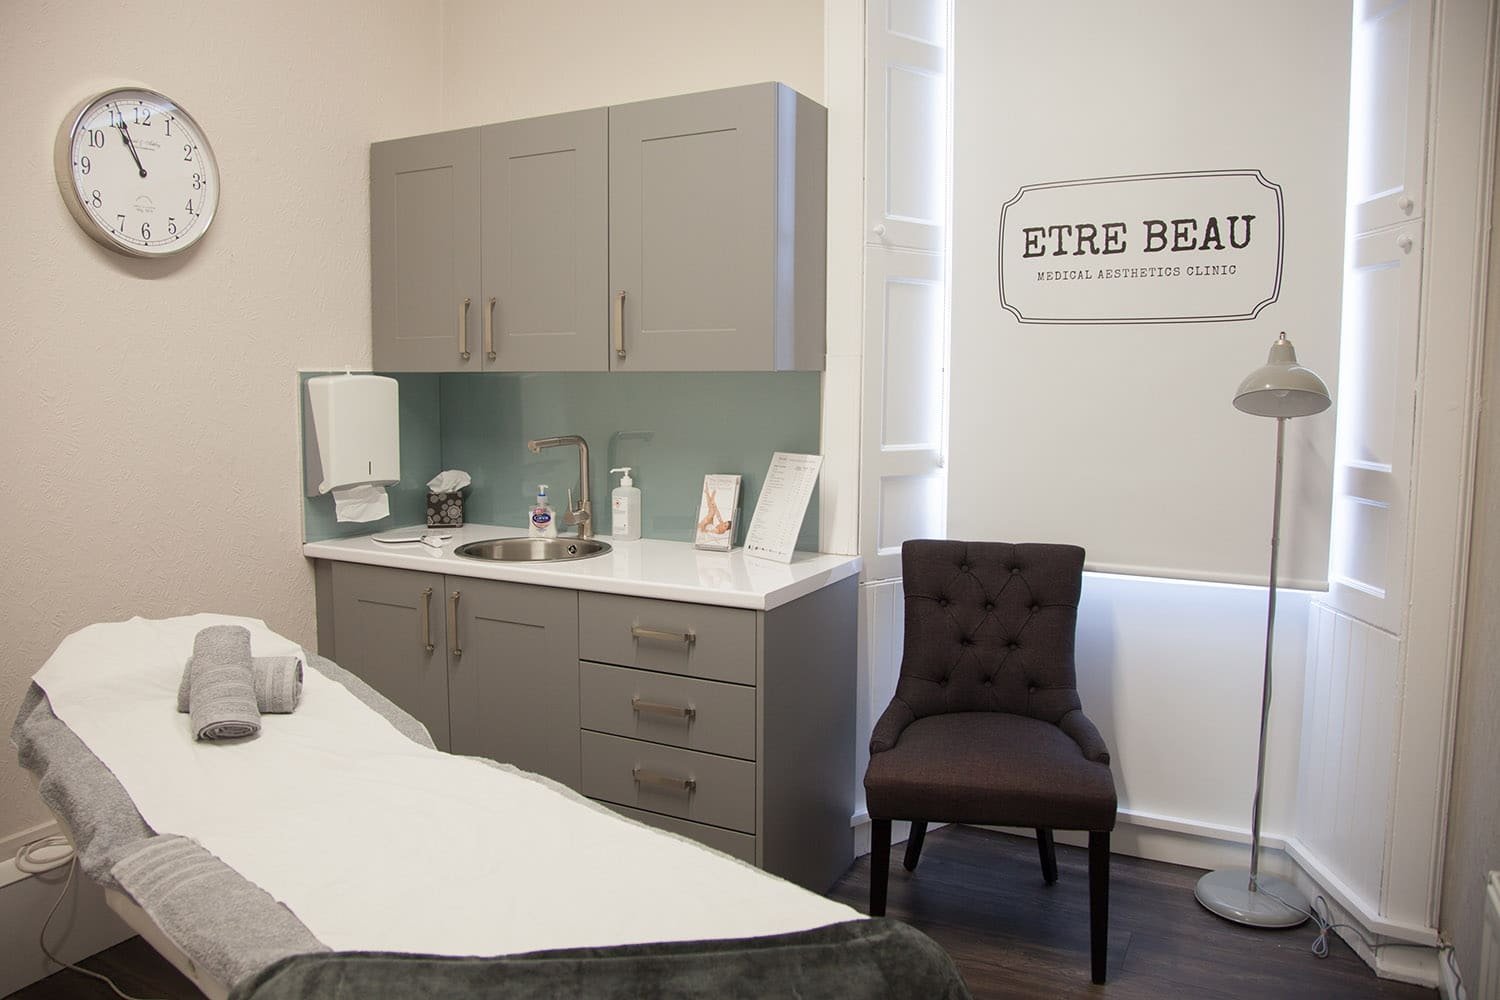 Our lip filler treatment room at our Stirling clinic